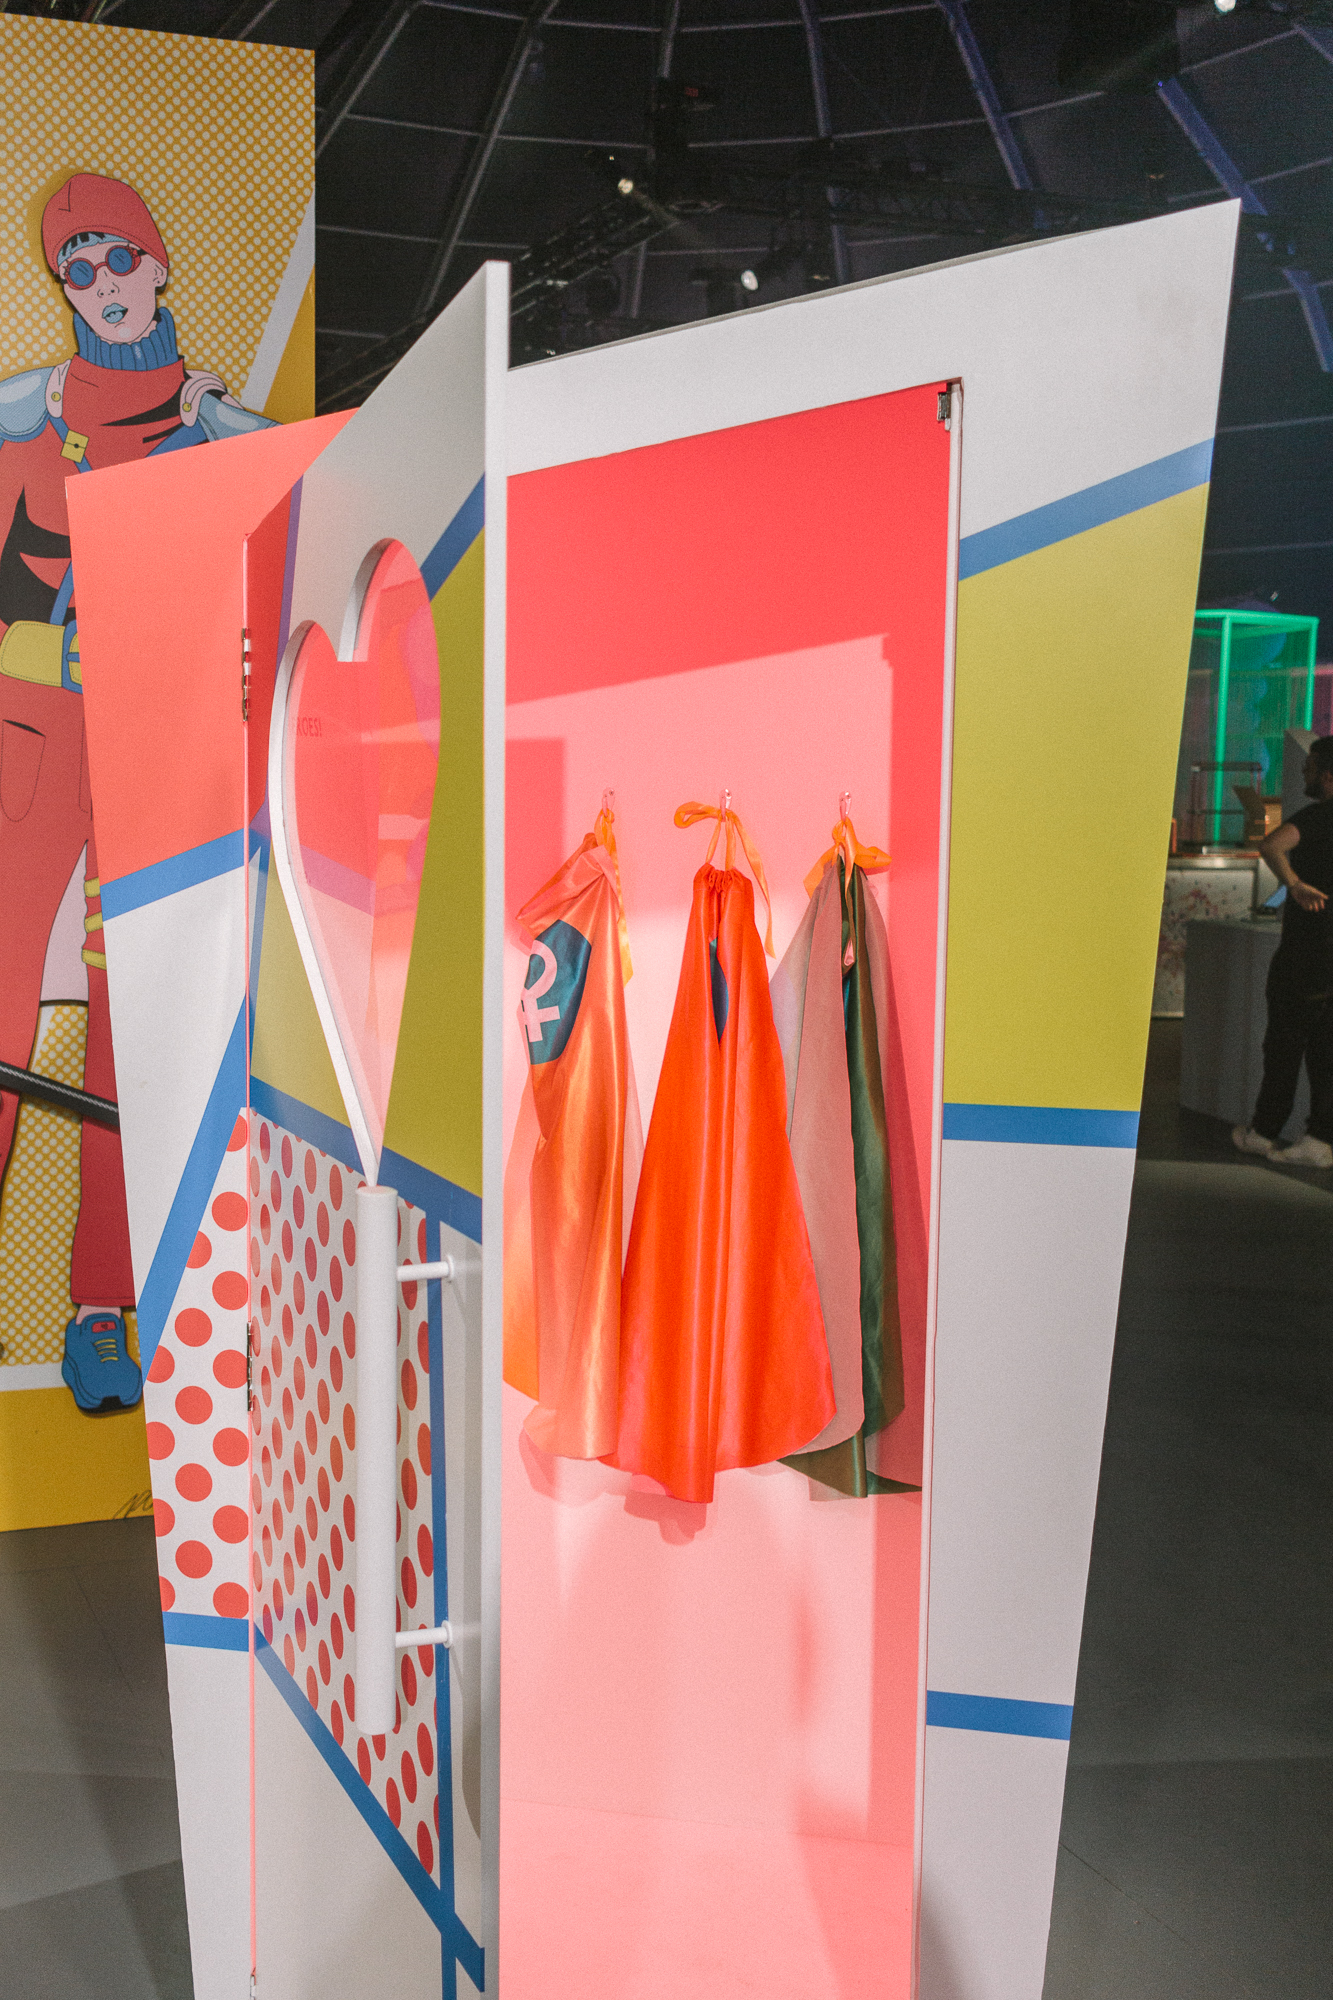 29Rooms from Refinery29 38